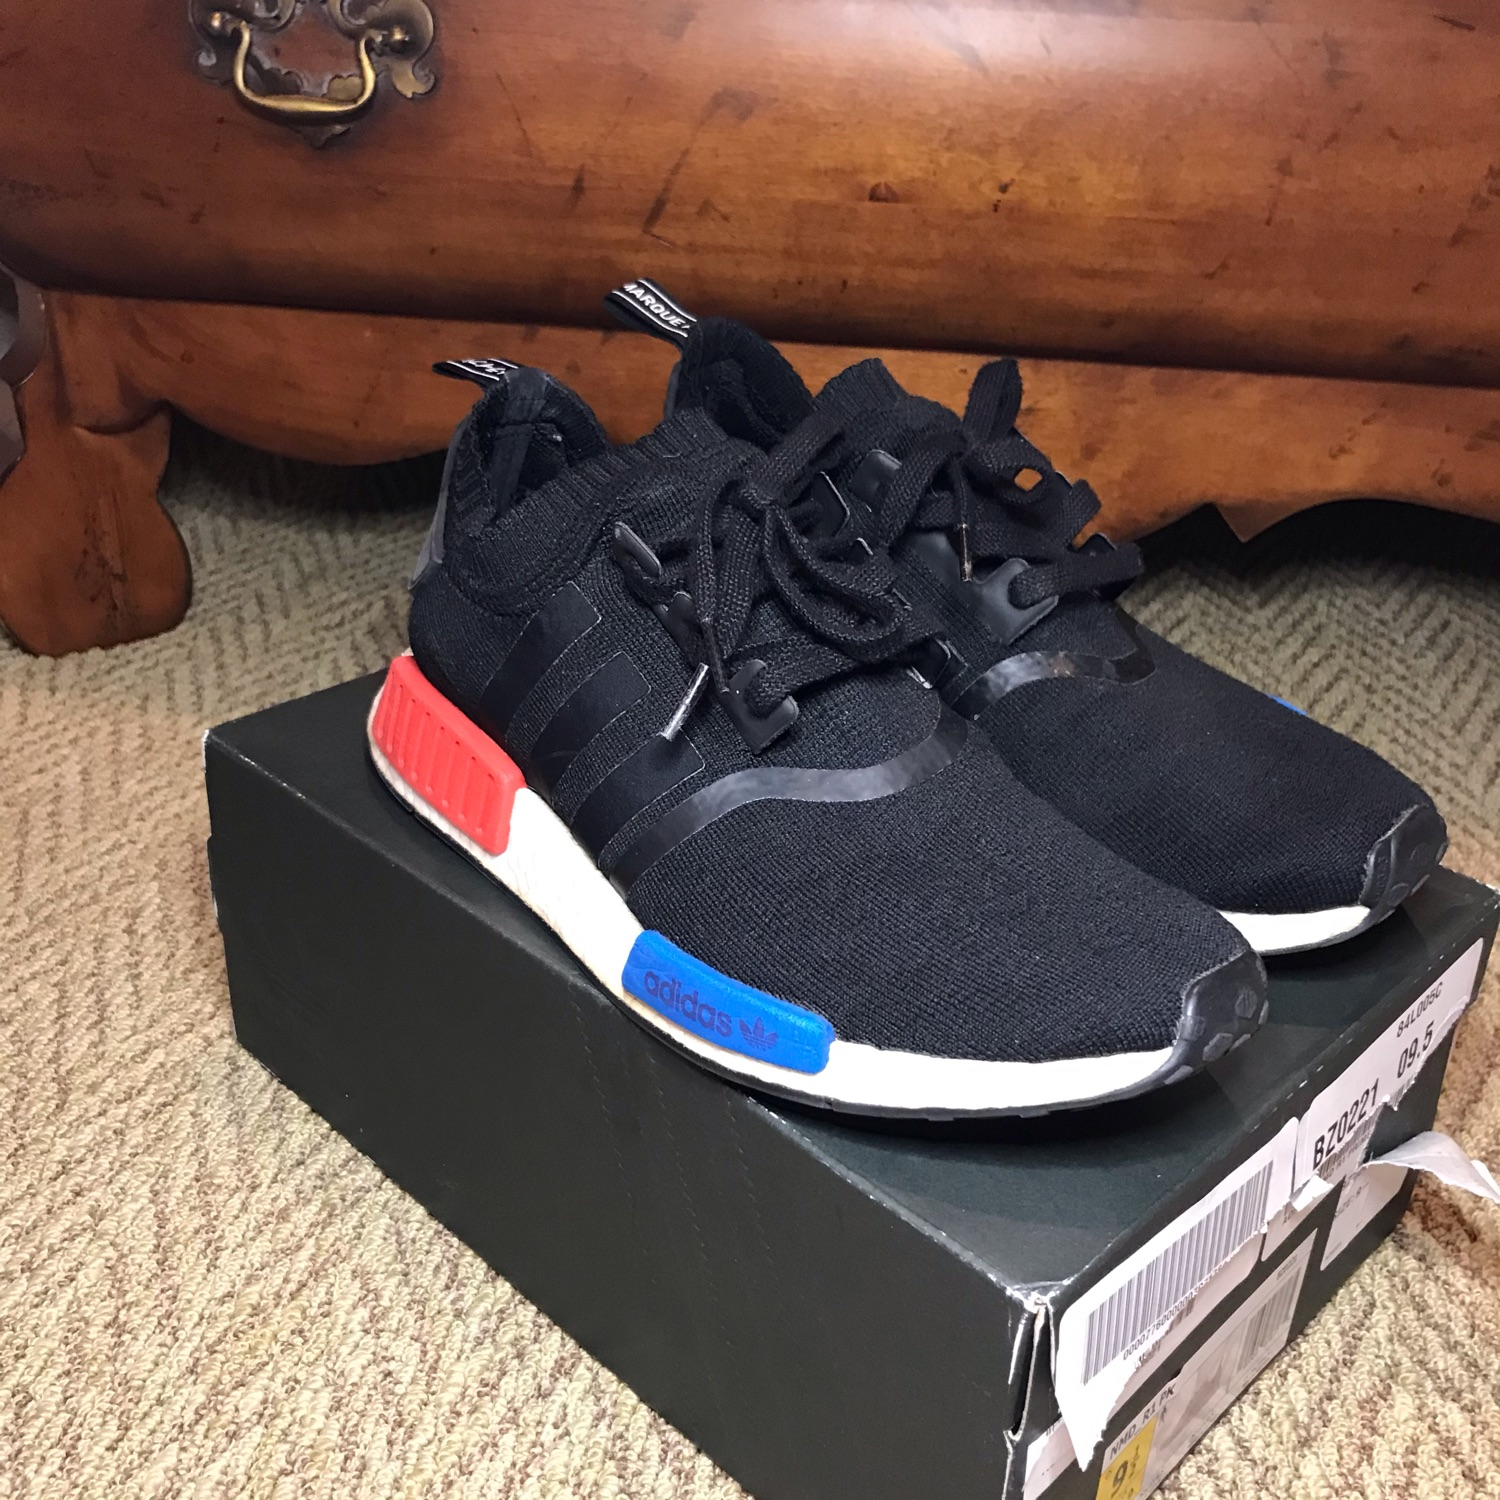 discount f1227 2a958 Adidas Nmd R1 Core Black Lush Red(Send Offers)